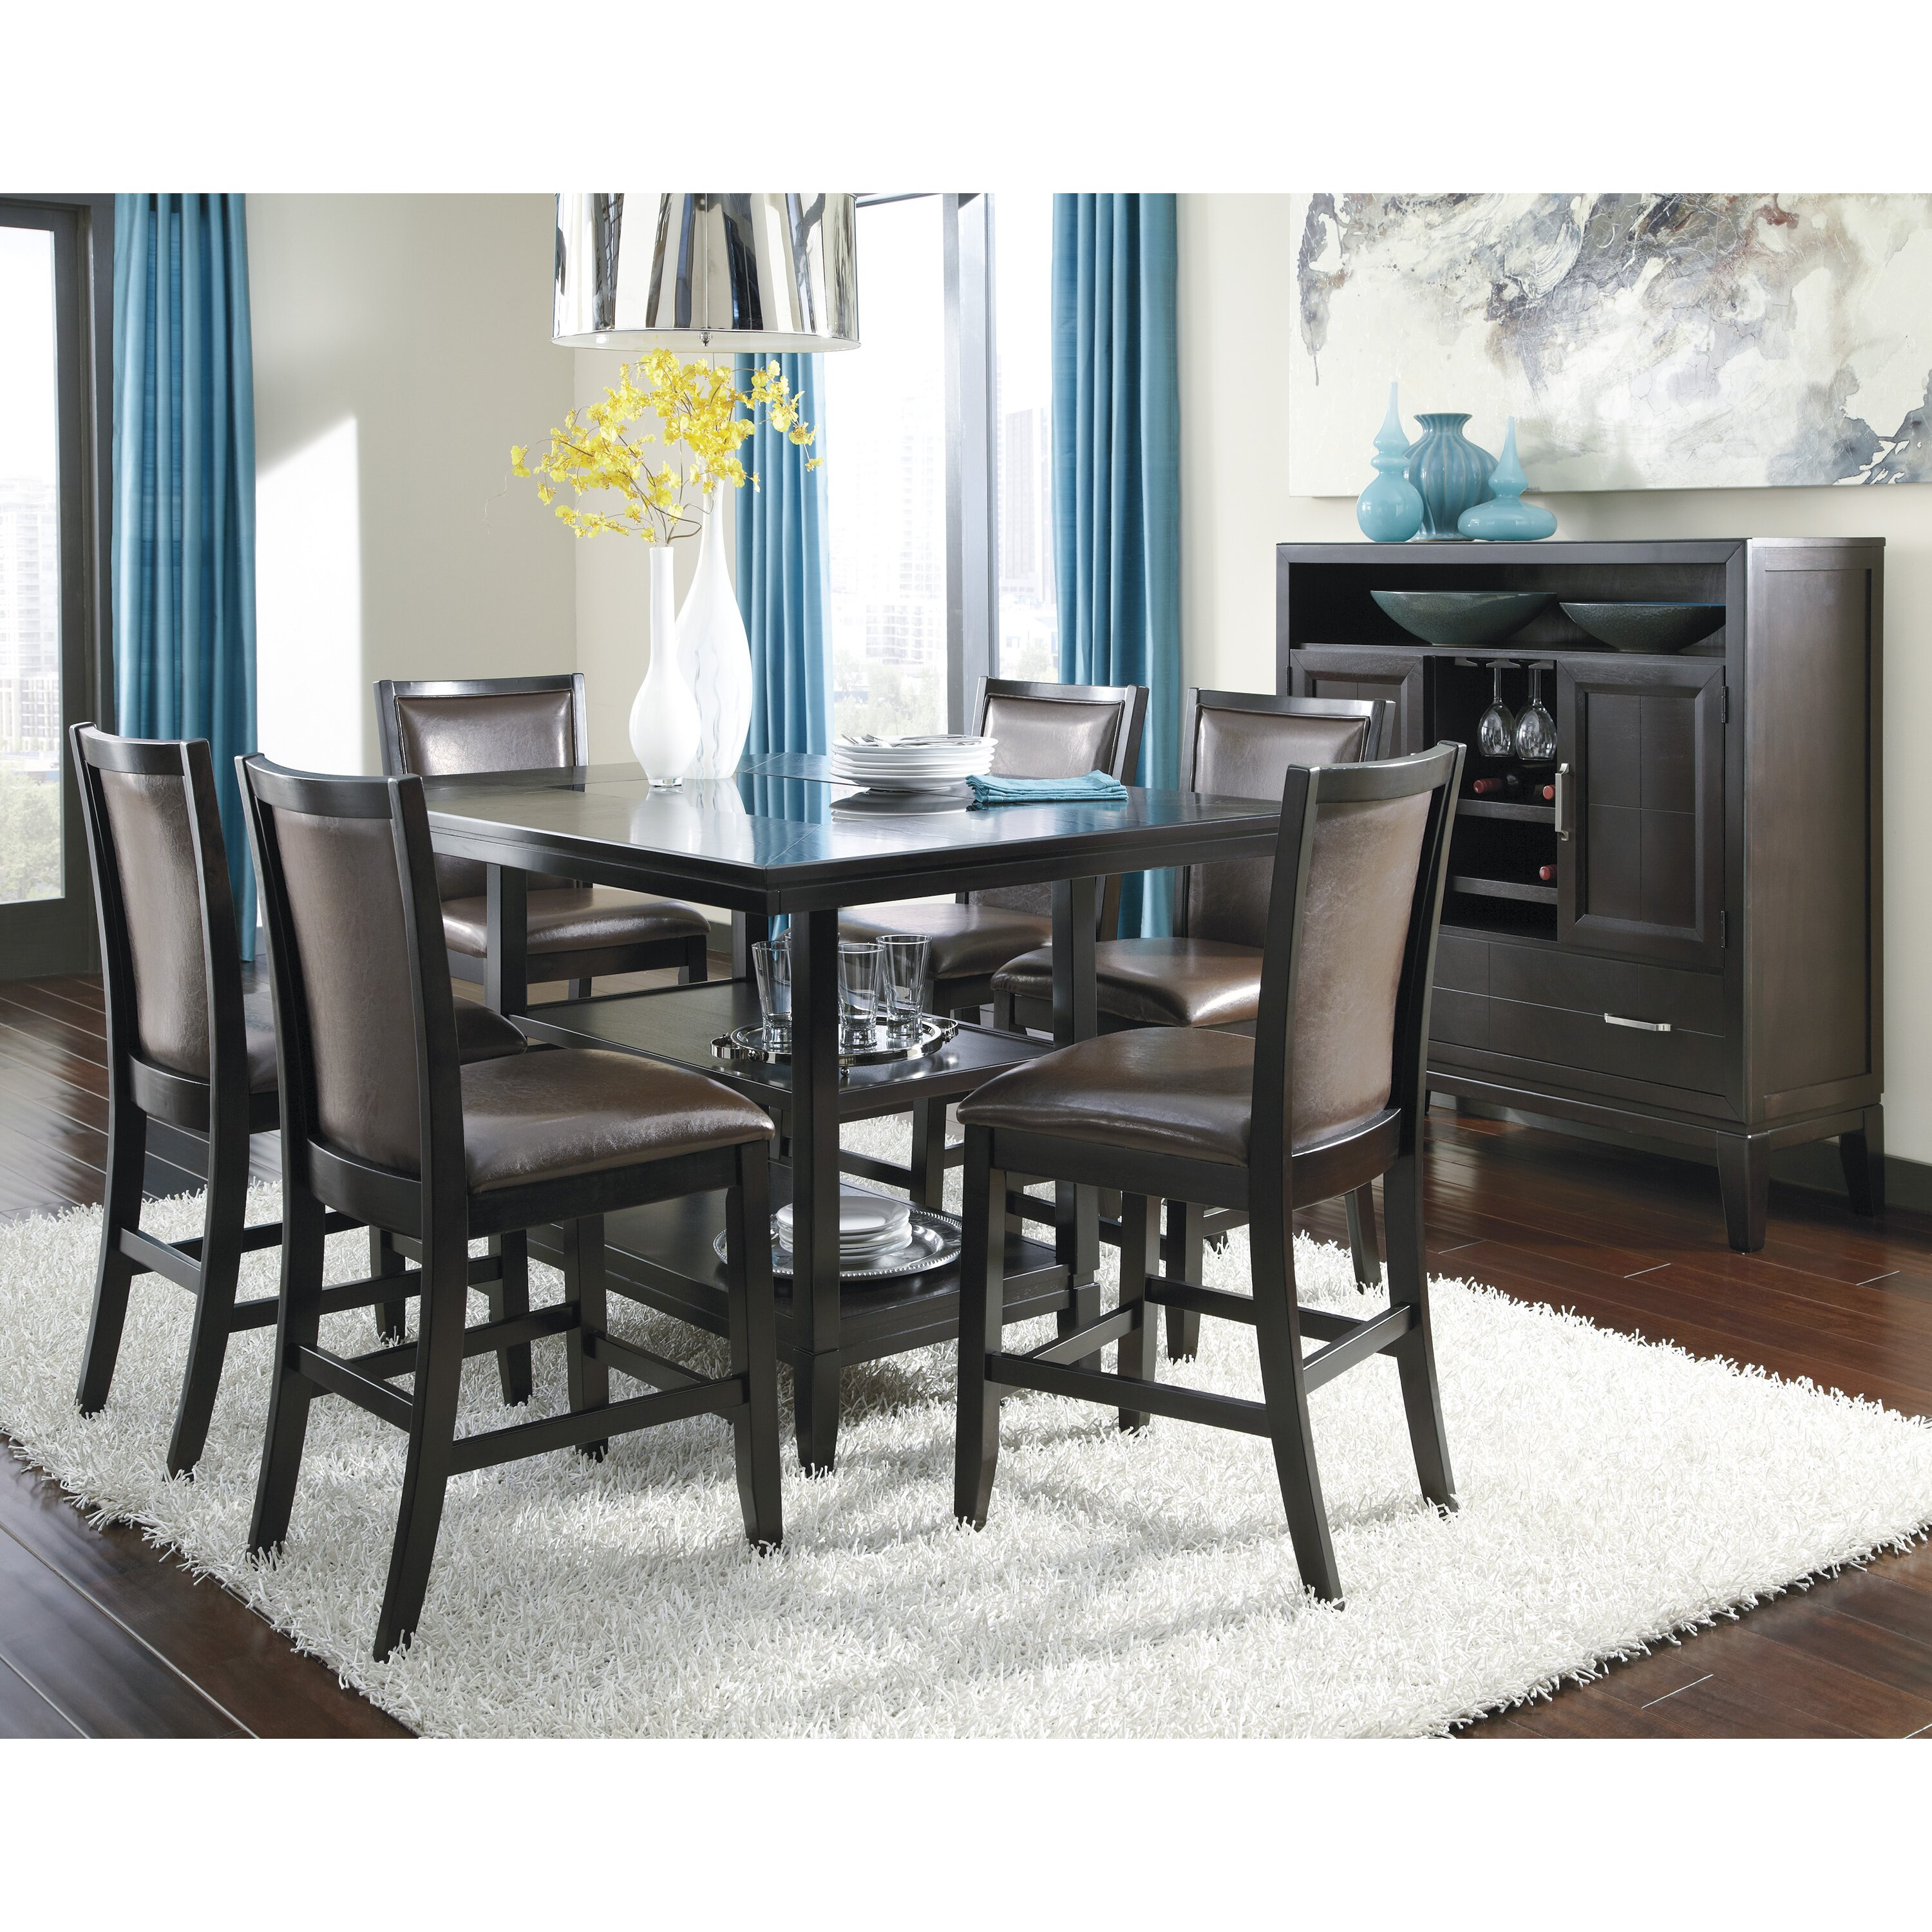 Signature Design by Ashley Trishelle Counter Height Dining  : Trishelle Counter Height Dining Table D550 32 from www.wayfair.com size 3000 x 3000 jpeg 1777kB